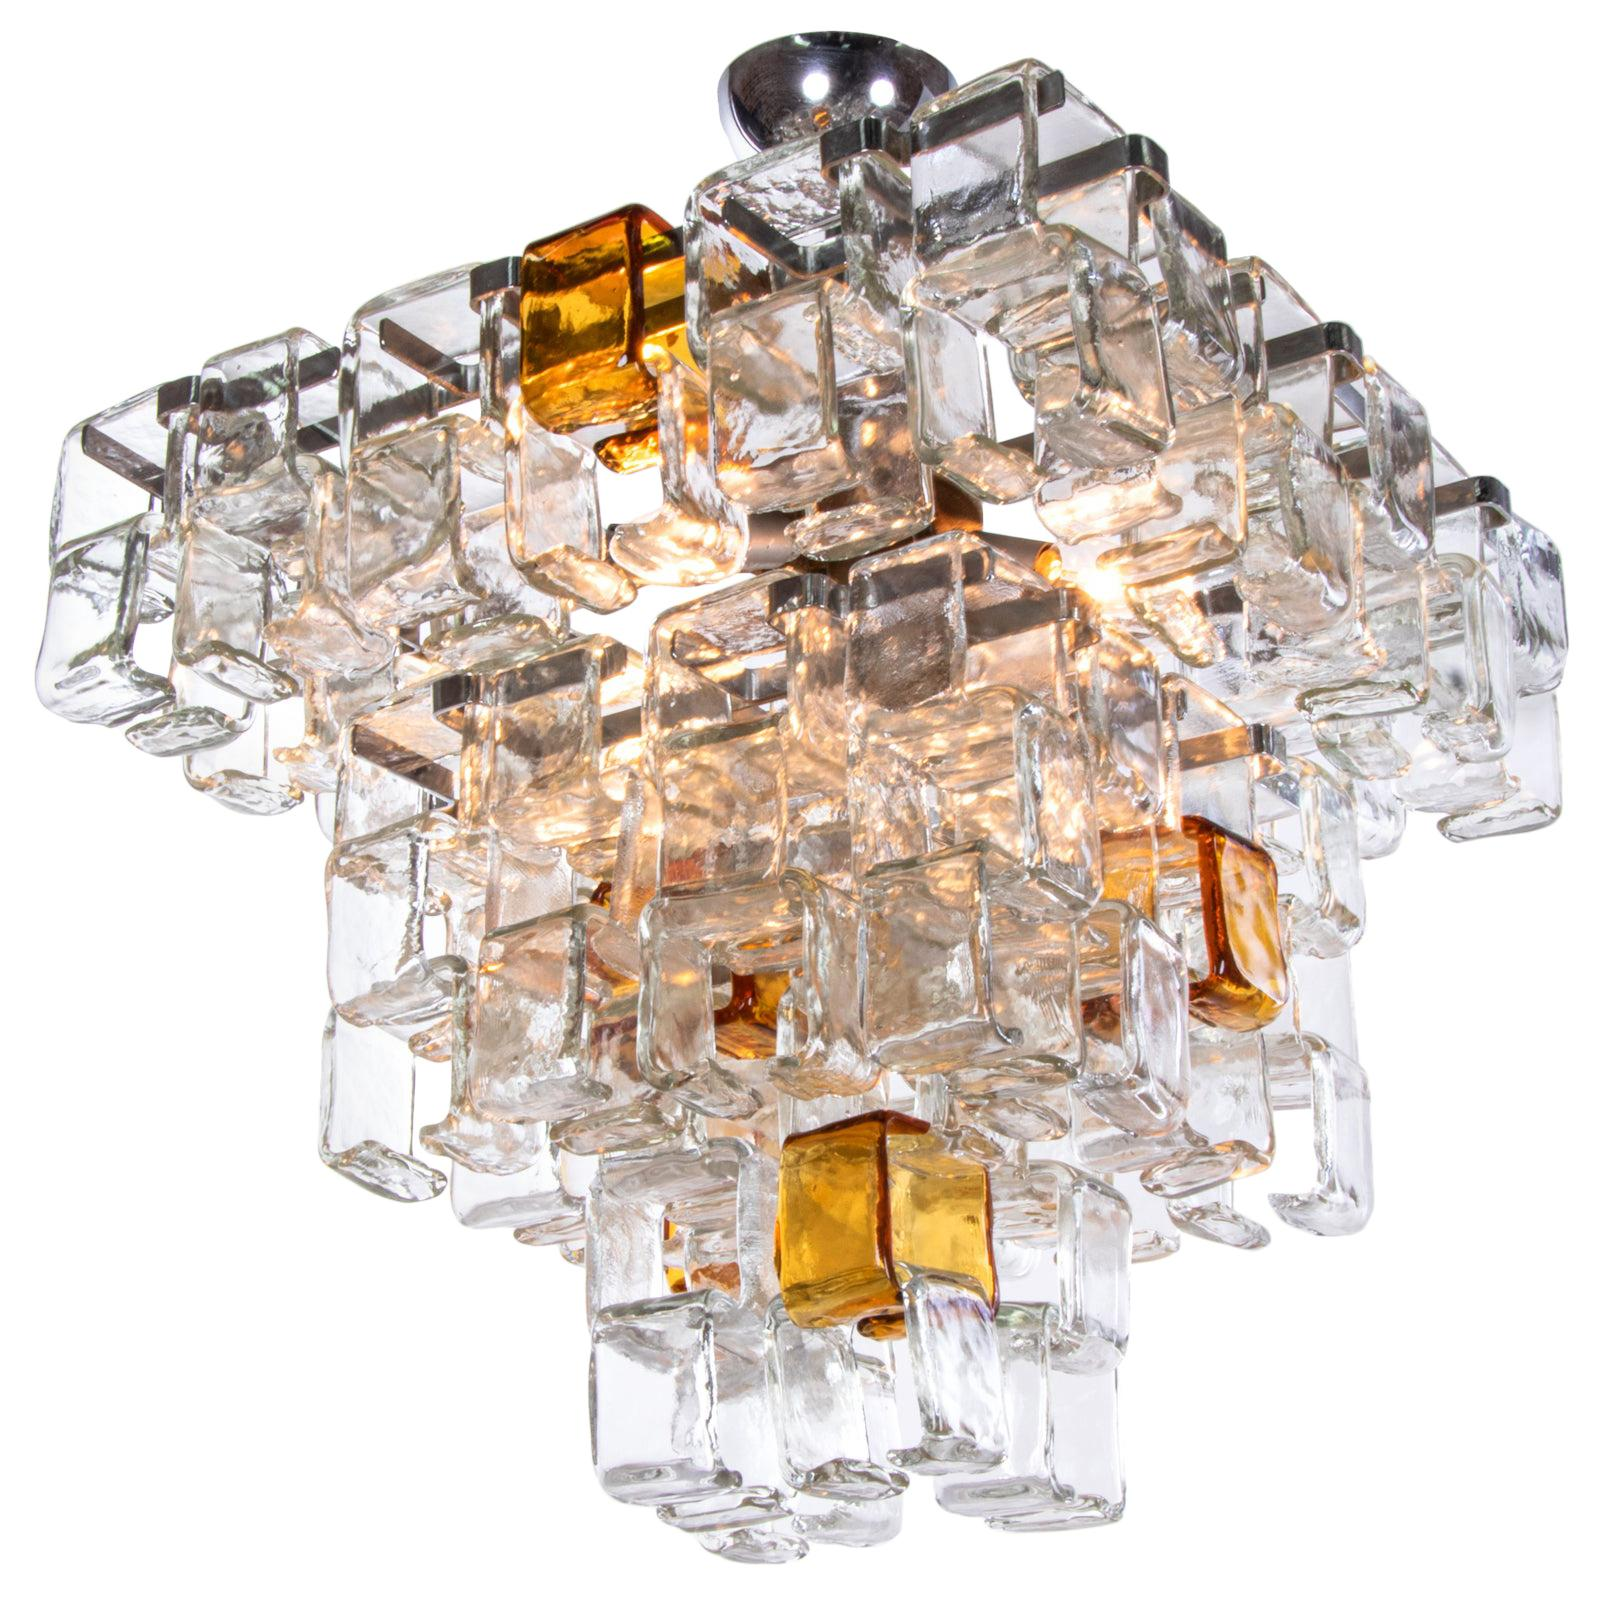 Italian Murano Glass Pendant Large French Crystal Chandelier Handmade Blown Glass Chandelier Blue and Amber Glass Art Chandelier Lighting